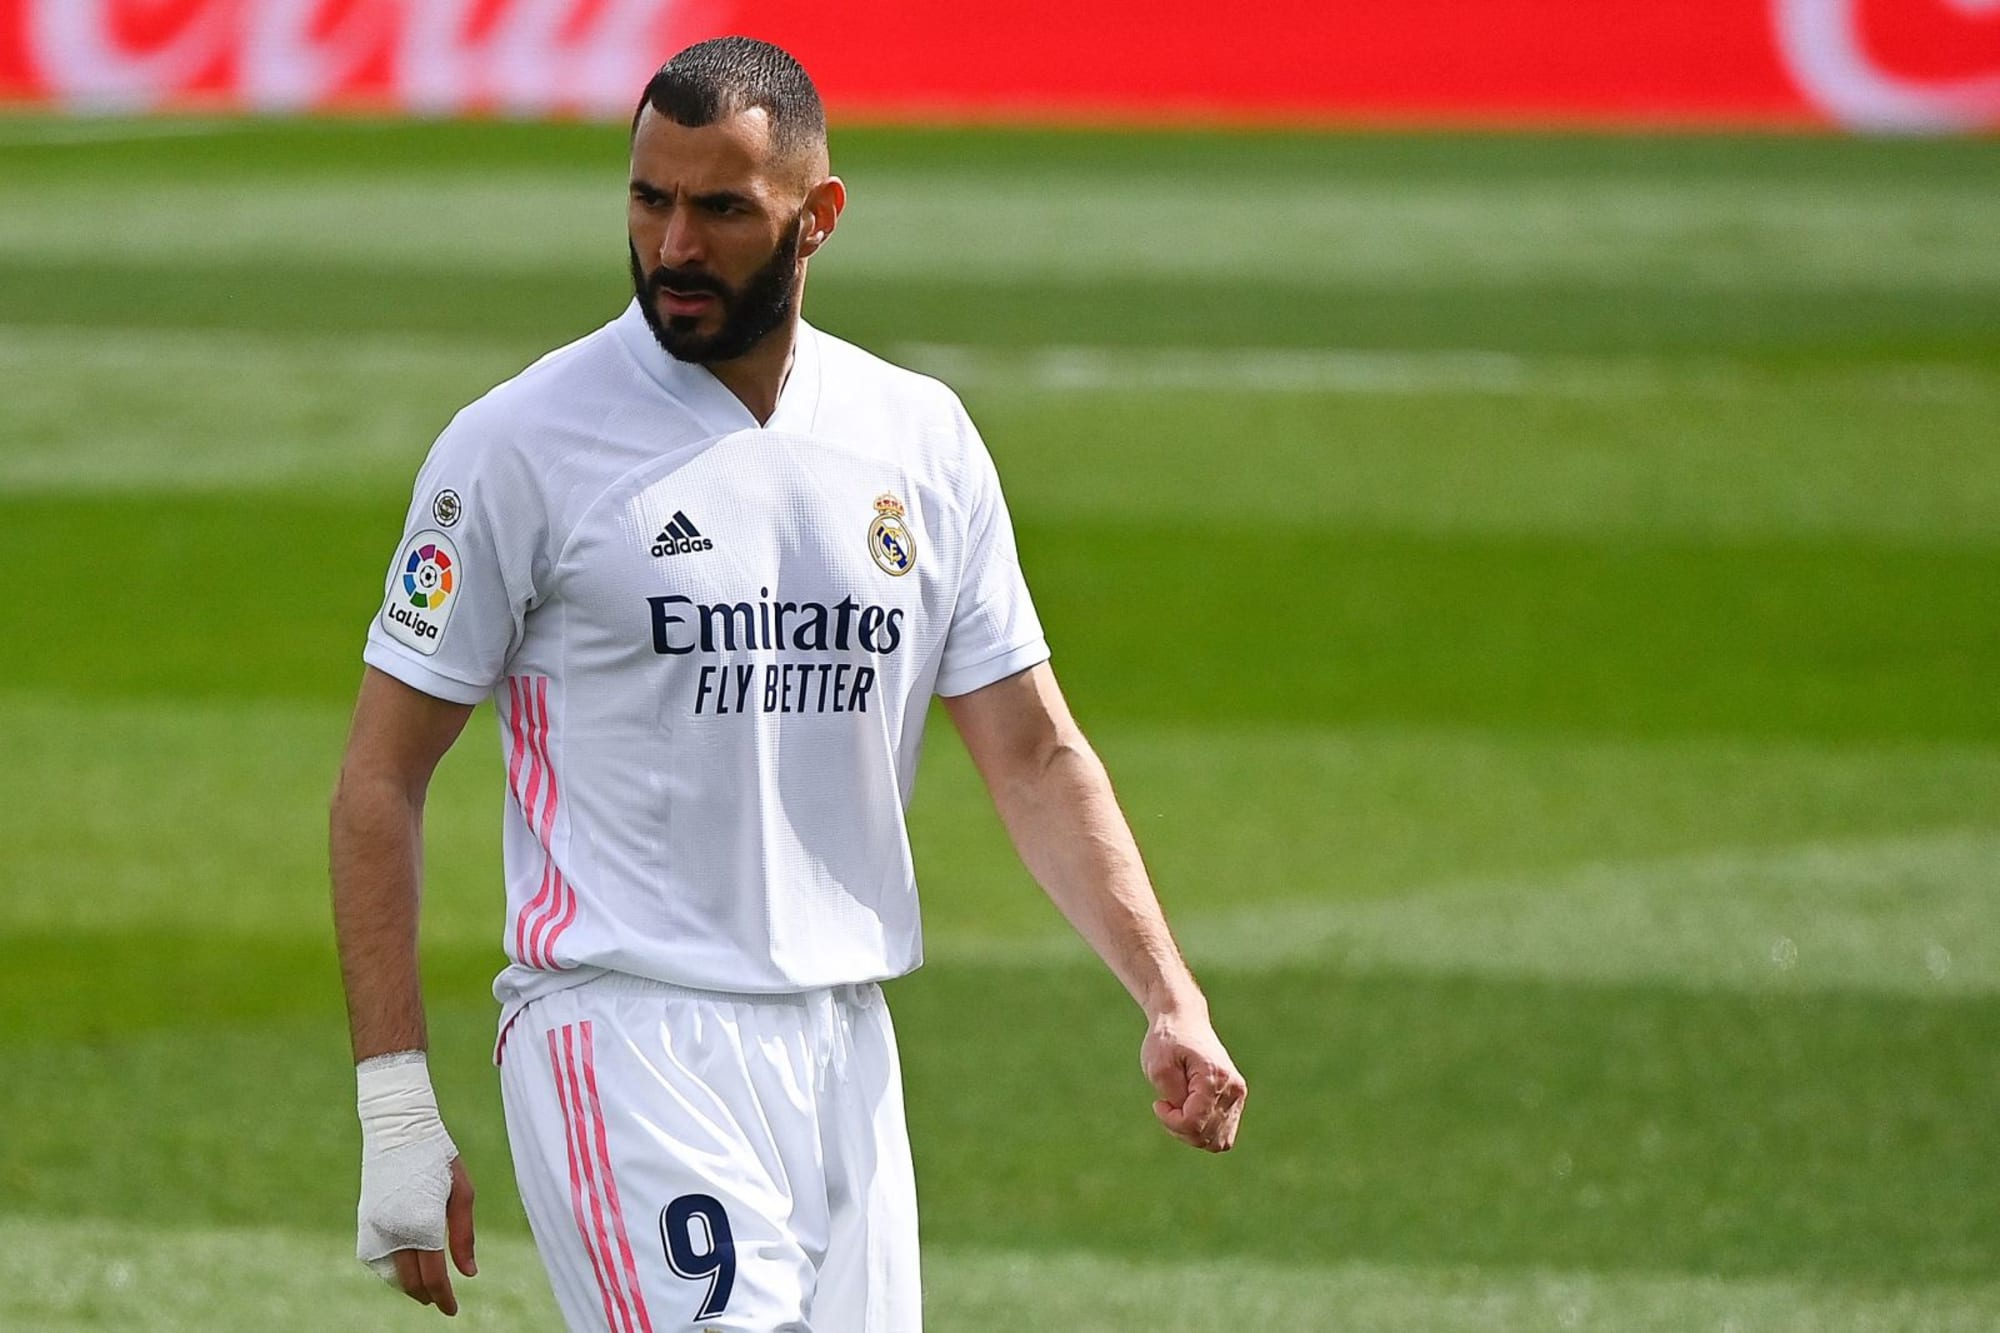 Real Madrid Predicted Lineup vs. Liverpool: Surprising Decisions Expected